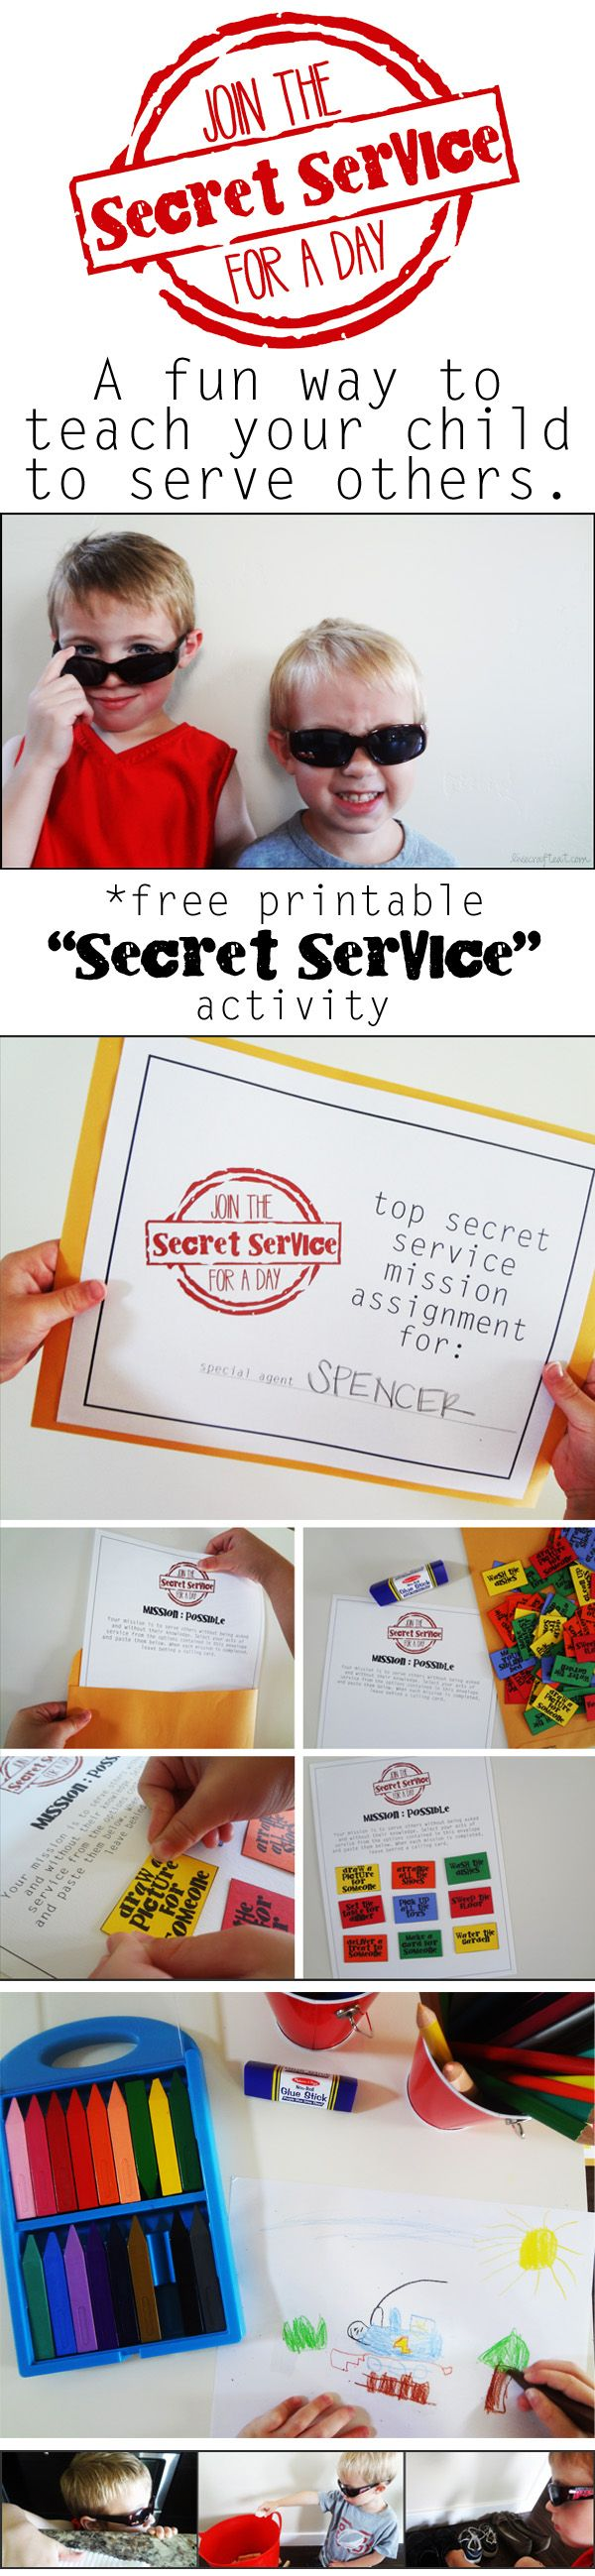 "Teaching your child about kindness: A ""Secret Service"" activity with 4 printables."